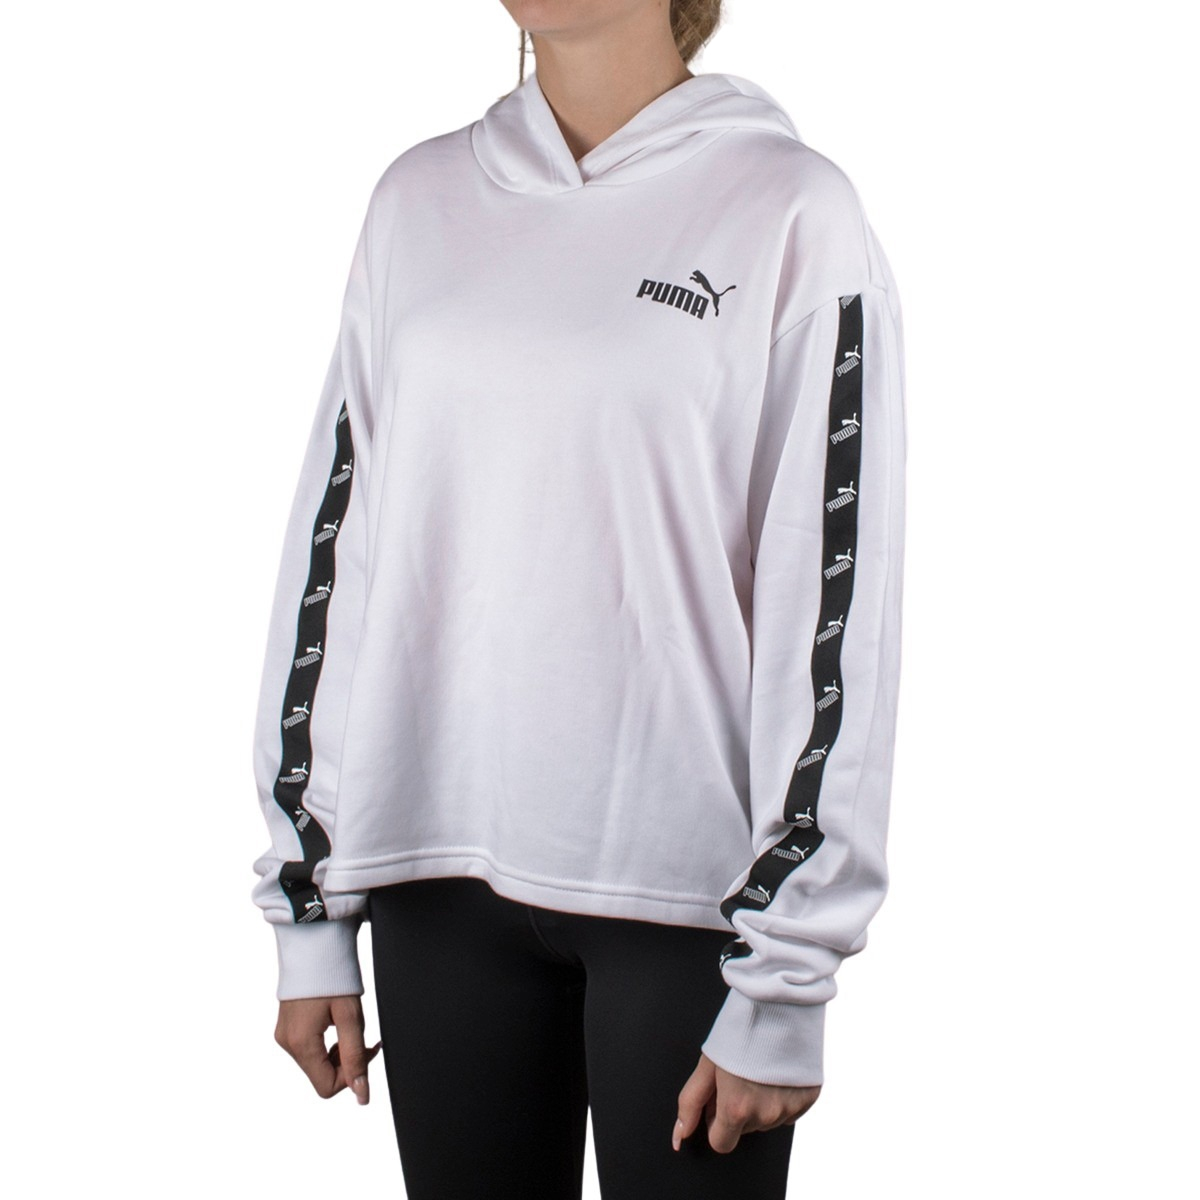 Puma Sudadera con capucha Amplified Cropped Hoodie White Blanco Mujer